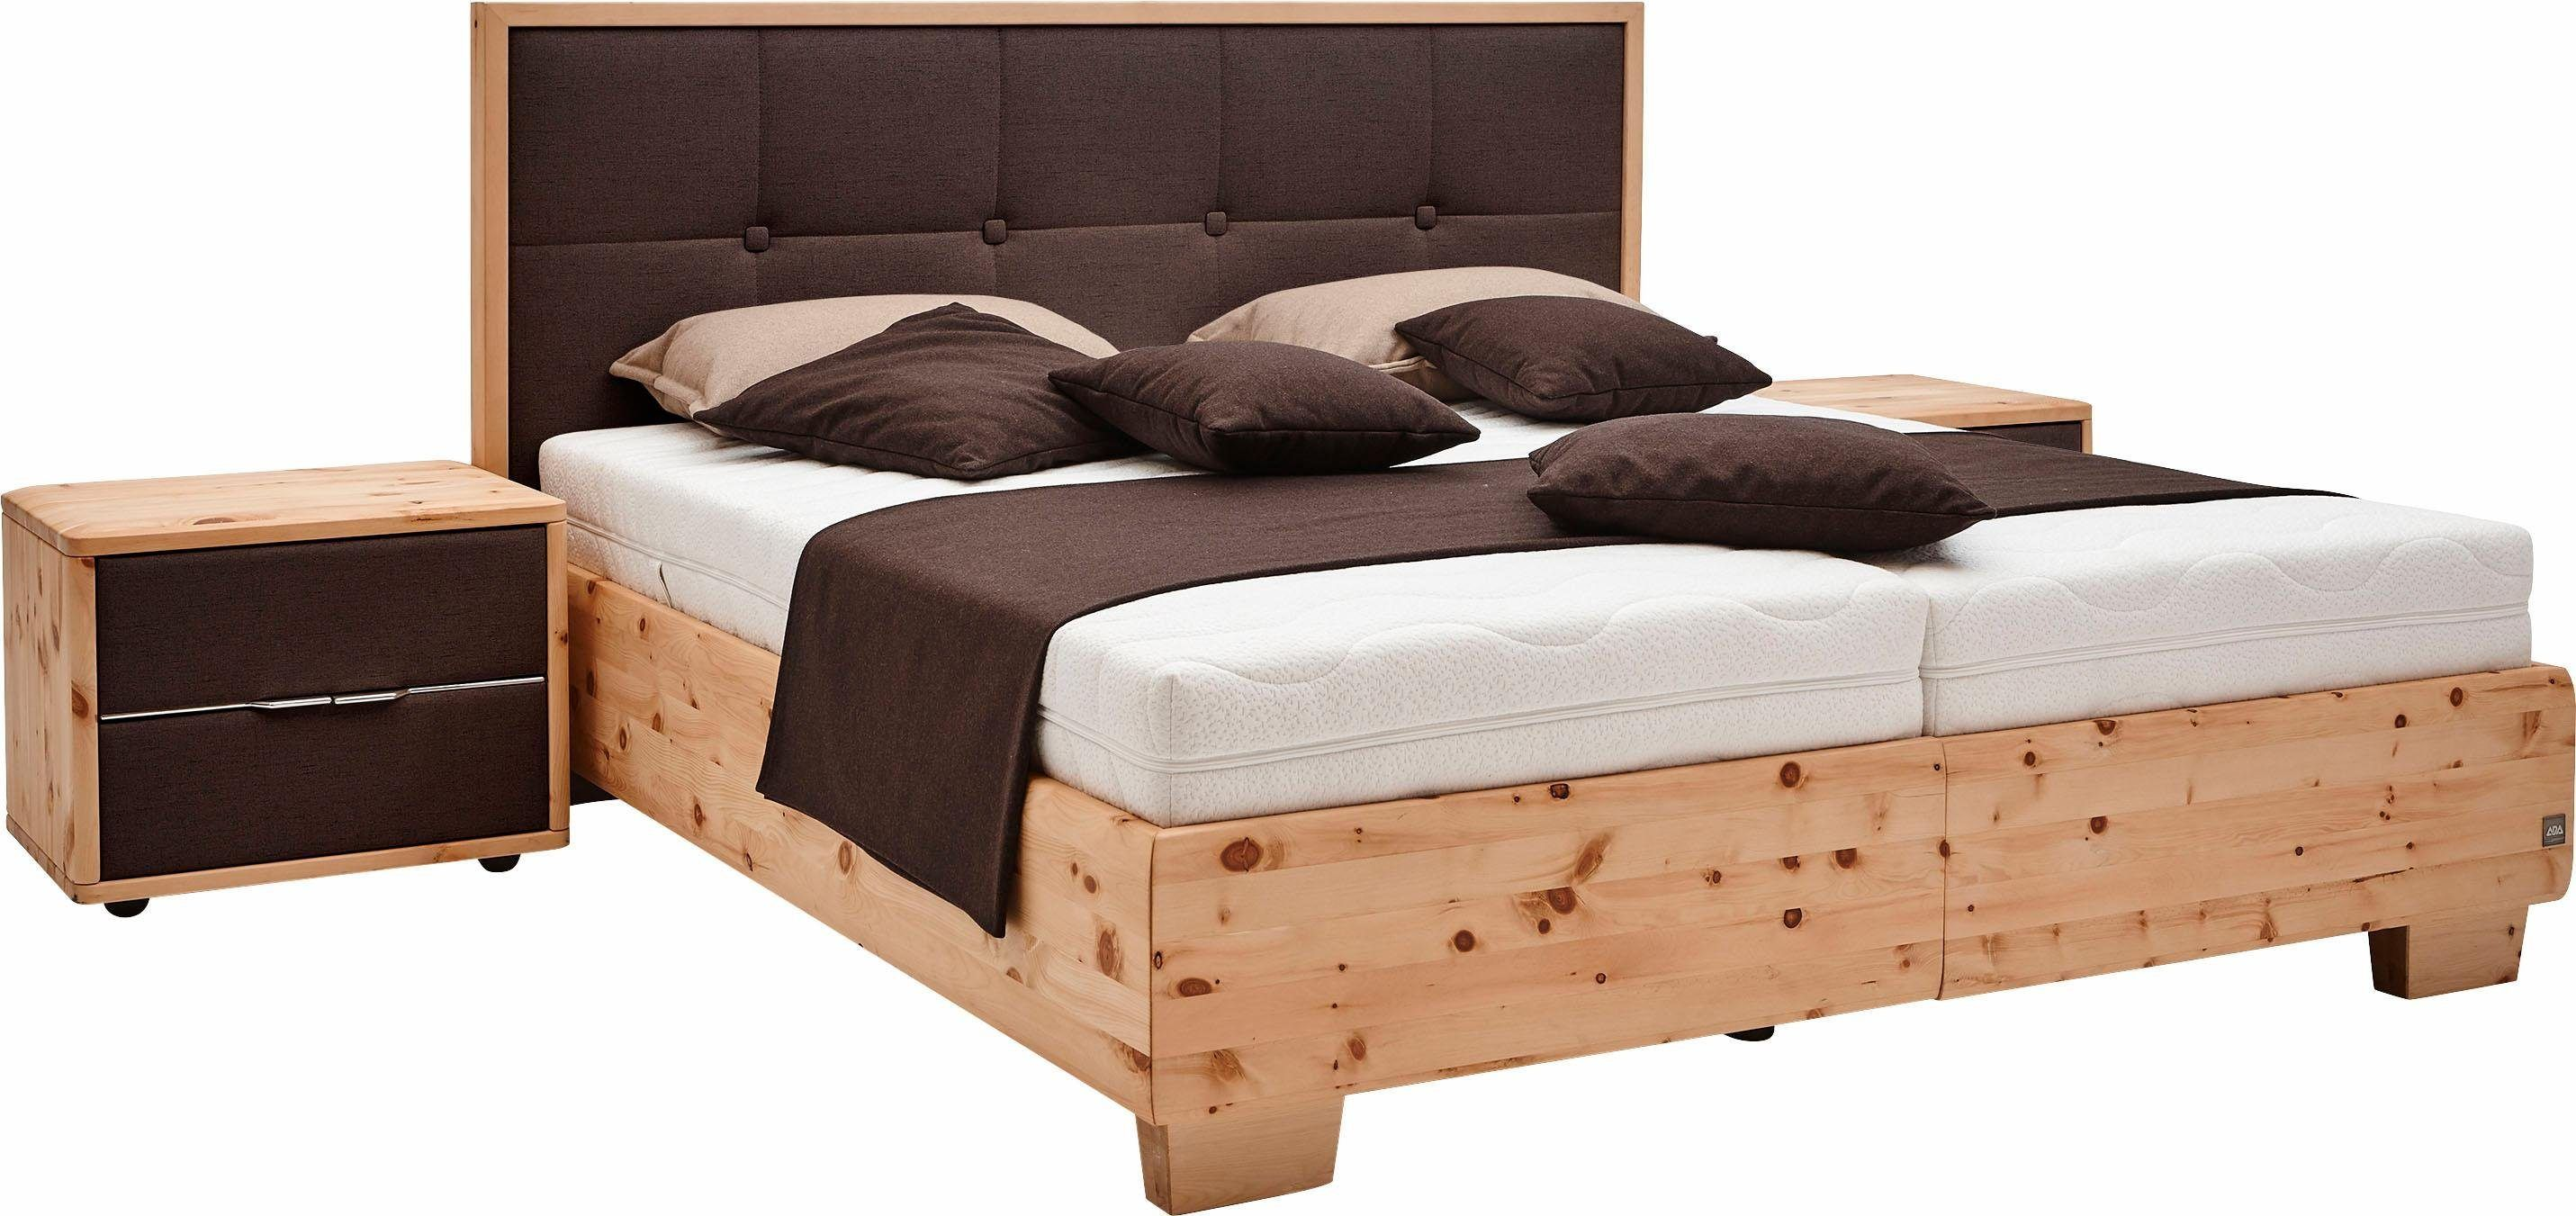 Collection Ab Boxspringbett Rubona Inkl Bettkasten Led Beleuchtung Und Topper In 2020 Bettkasten Bett Boxspringbett